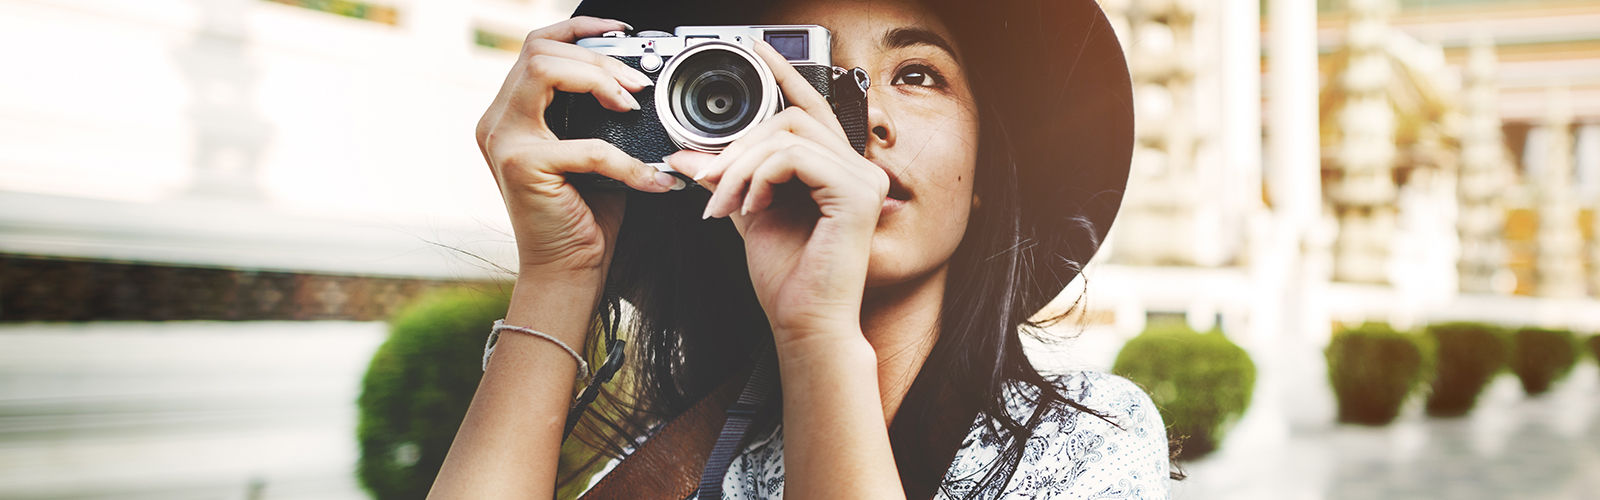 A woman wearing a hat taking a picture with her camera.